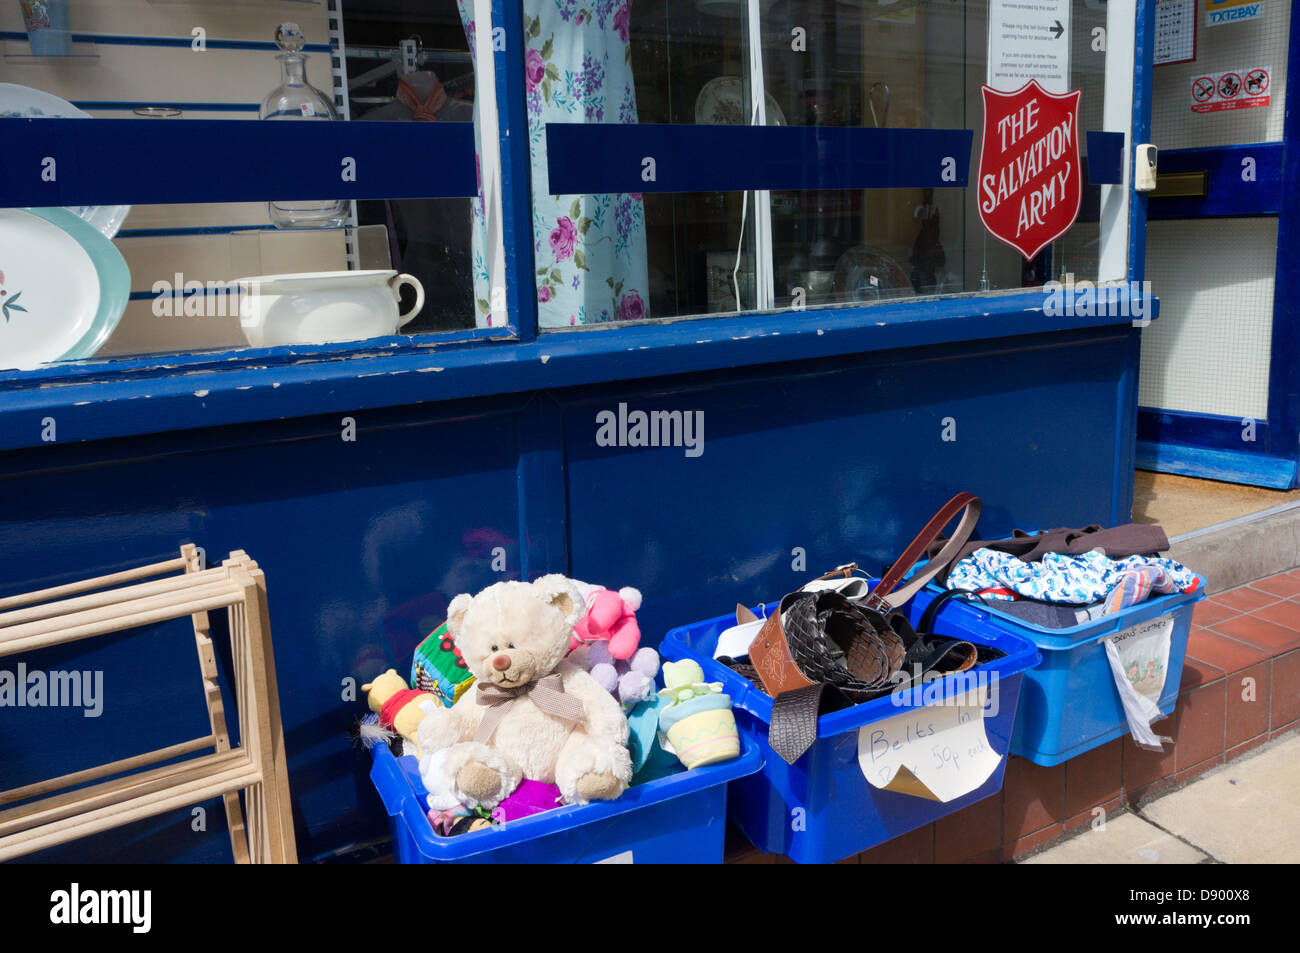 A teddy bear and other items for sale in boxes outside a Salvation Army charity shop. - Stock Image